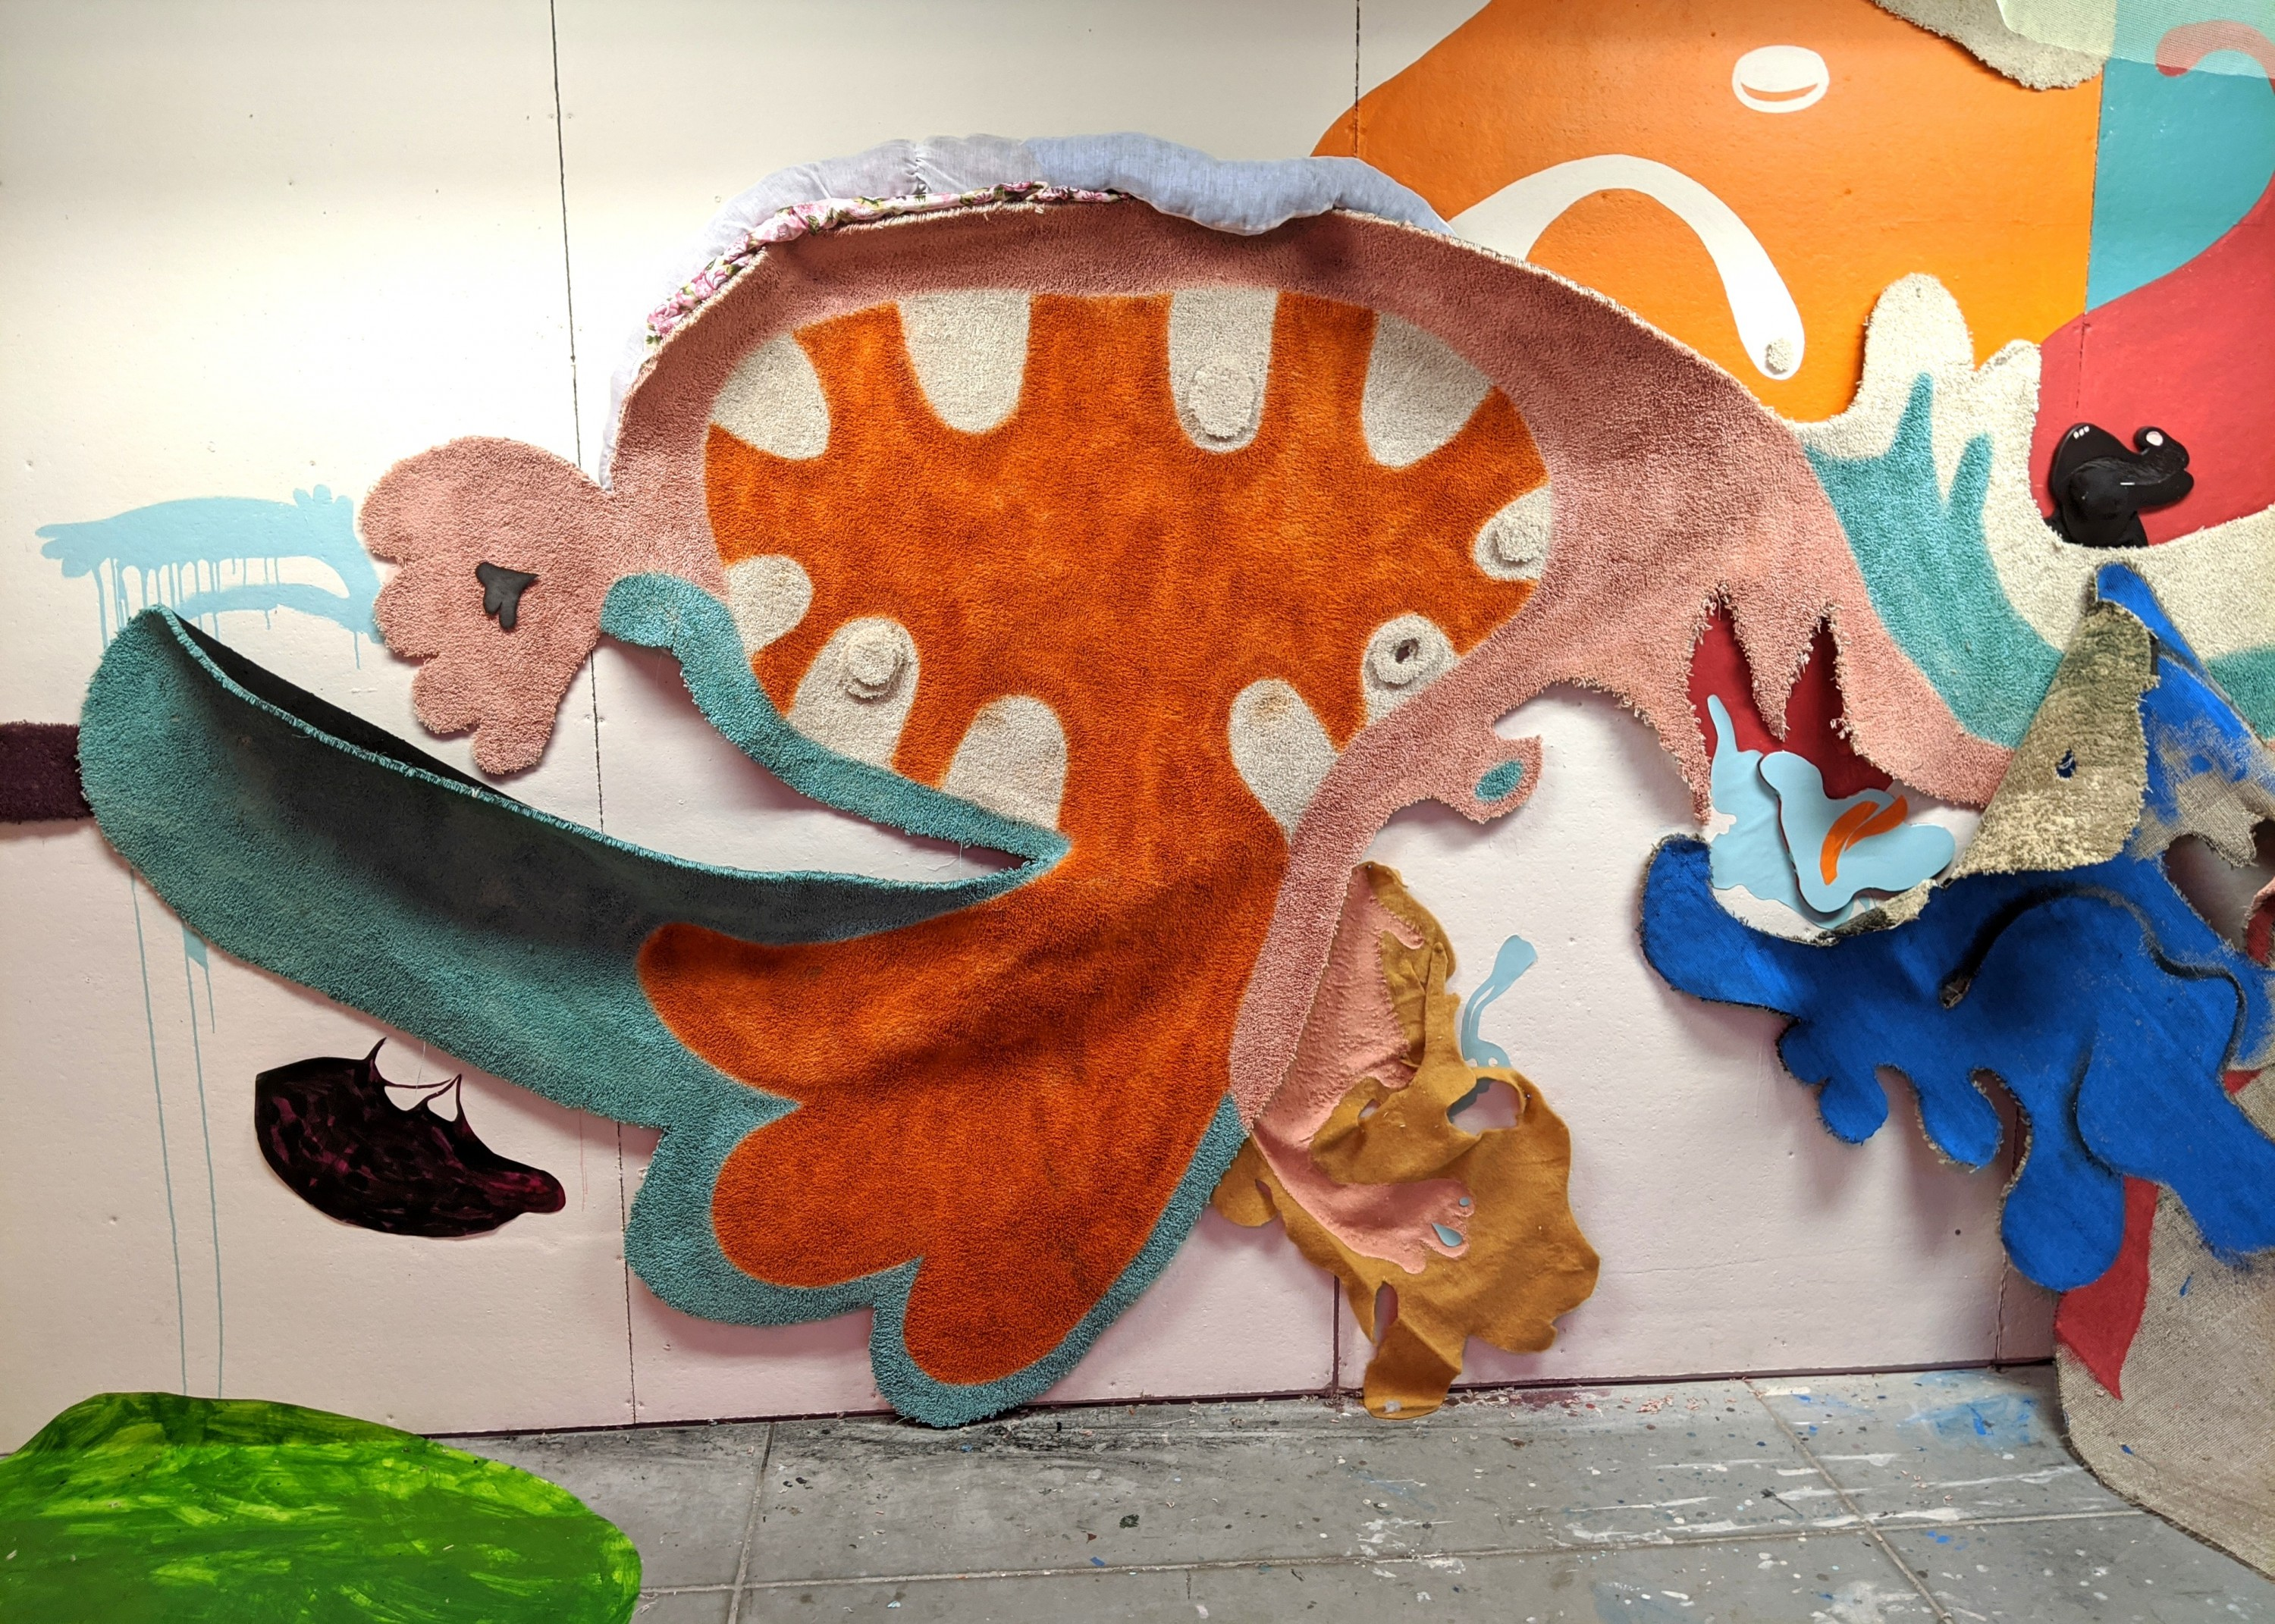 An installation consisting of a large piece of carpet hanging on the wall. The carpet is cut into an abstract, organic shape. It is colored with orange, pink, and blue paint depicting a mouth-like shape in the center. Paint, fabric, and additional smaller